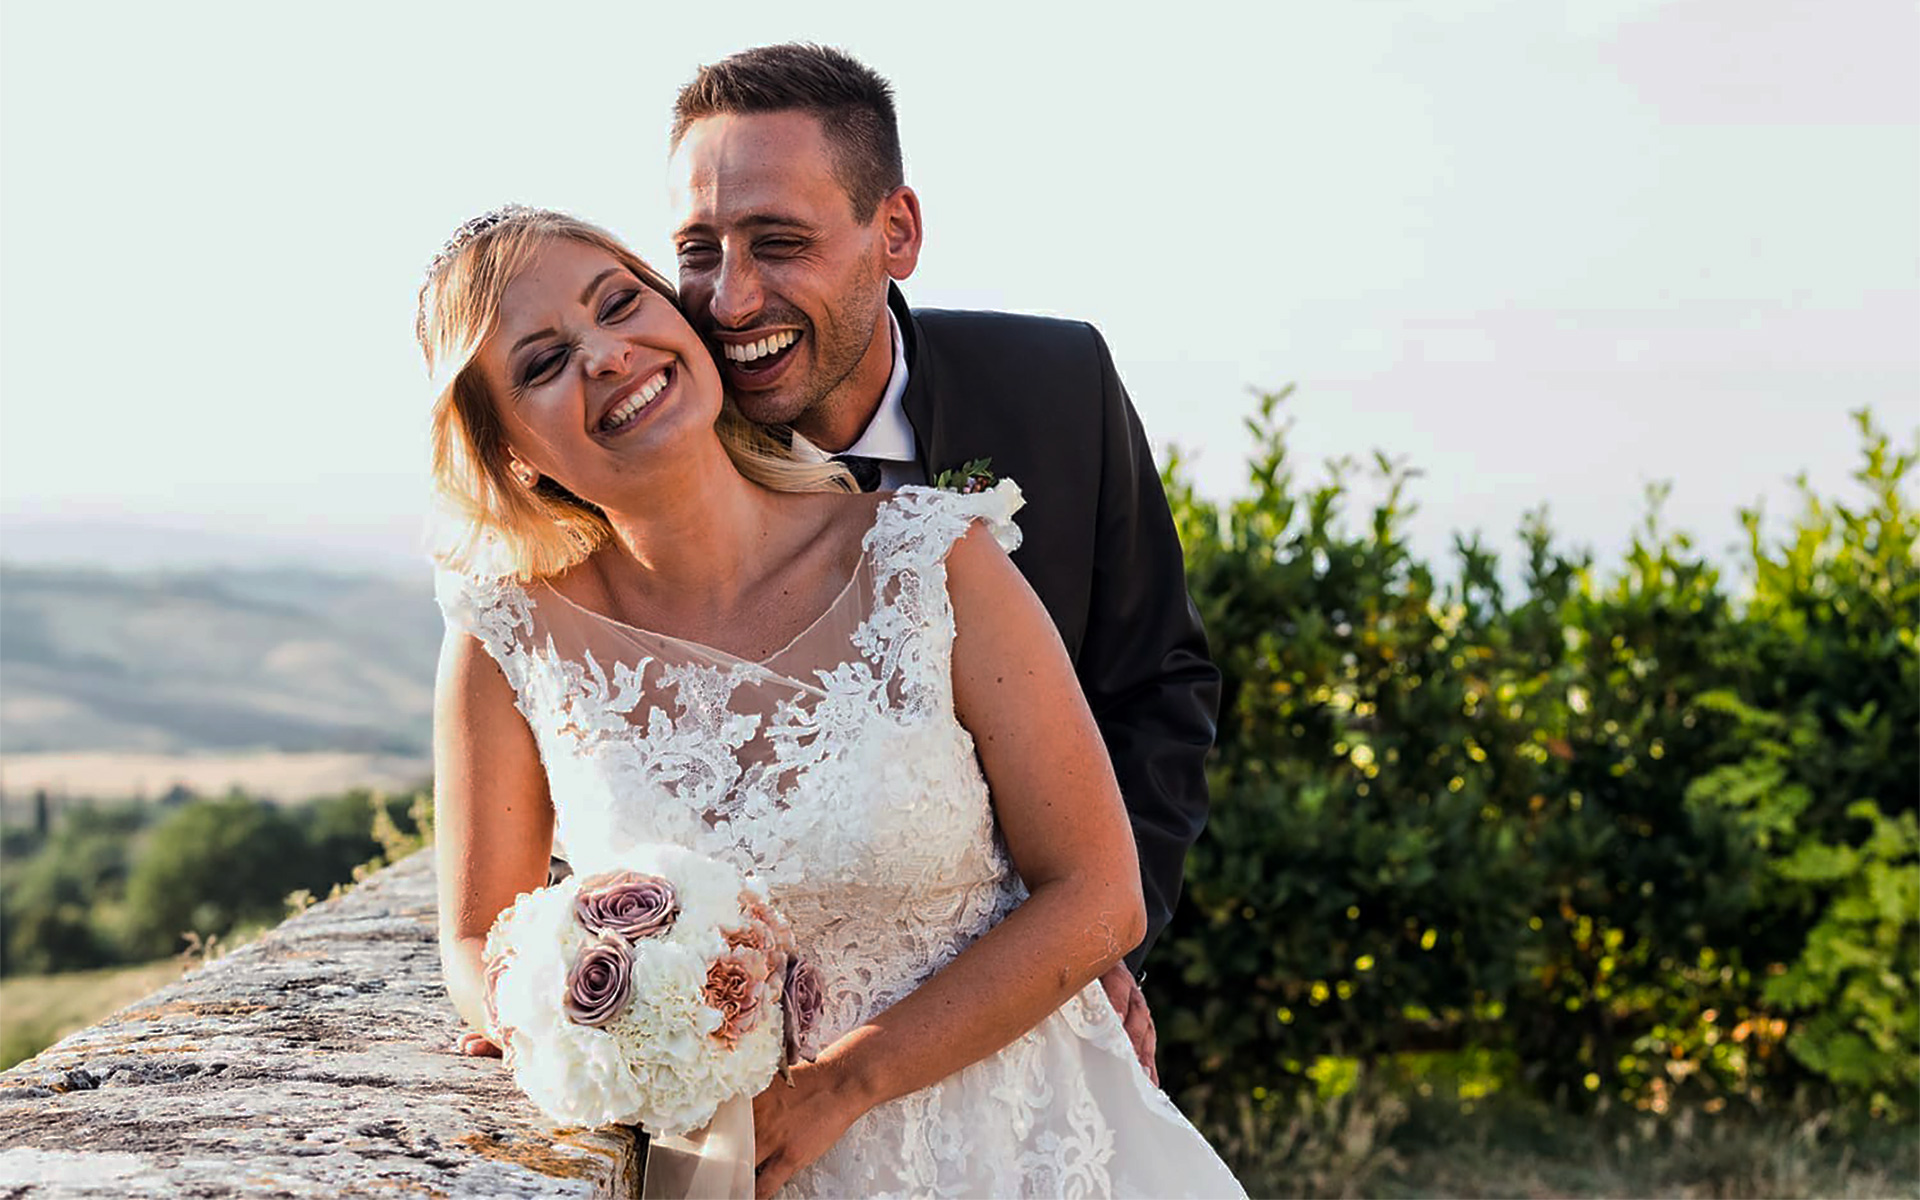 A A fairy tale wedding in Tuscany